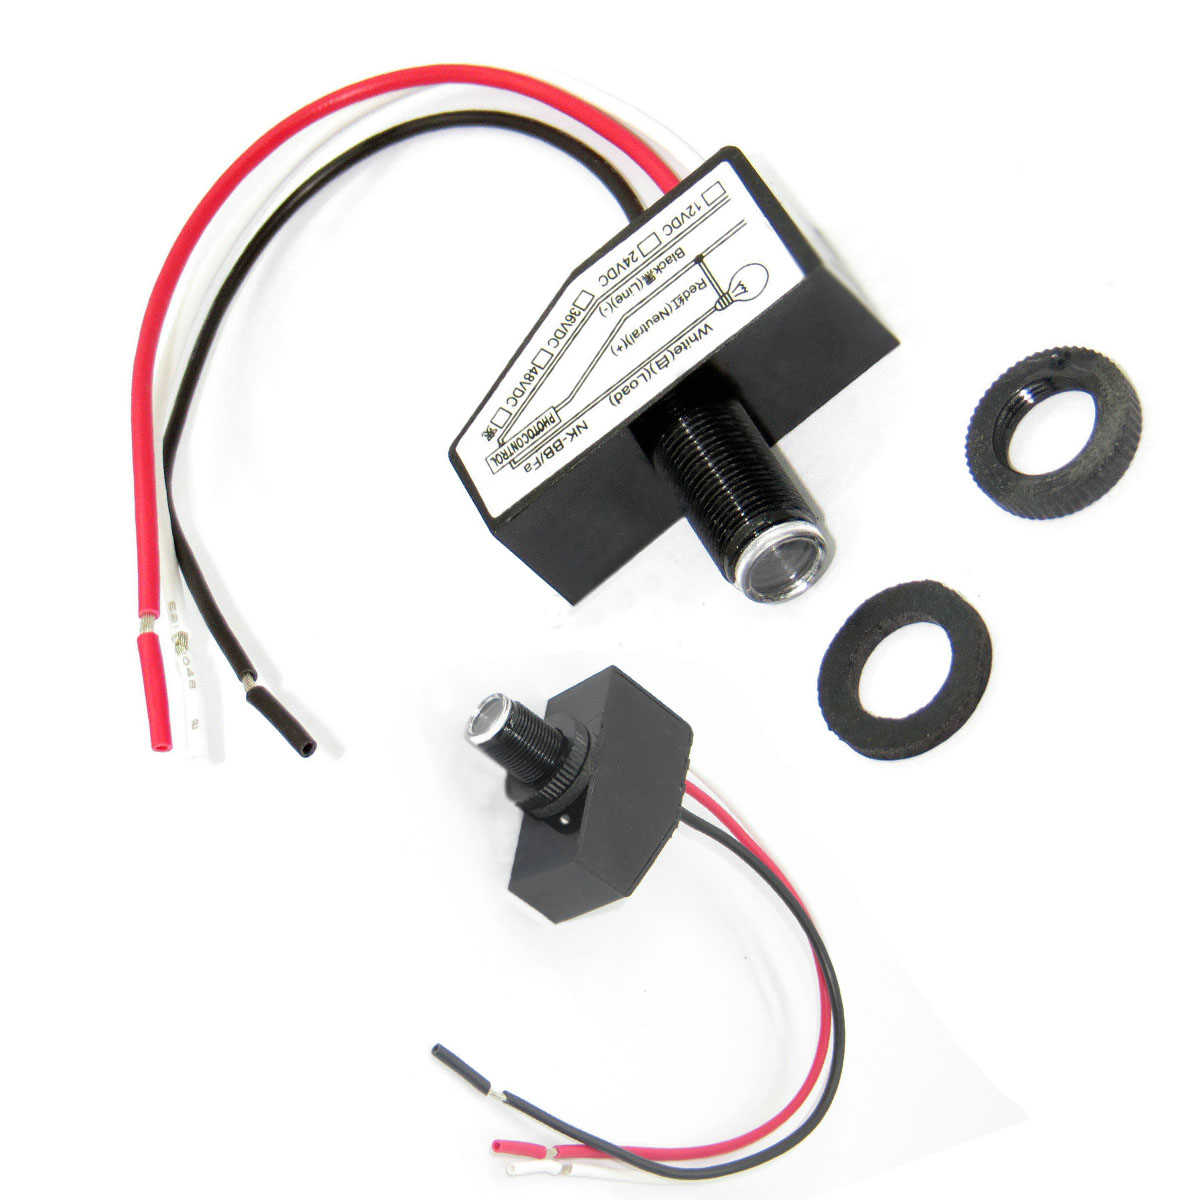 New Automatic Auto On Off Photocell Street Light Sensor